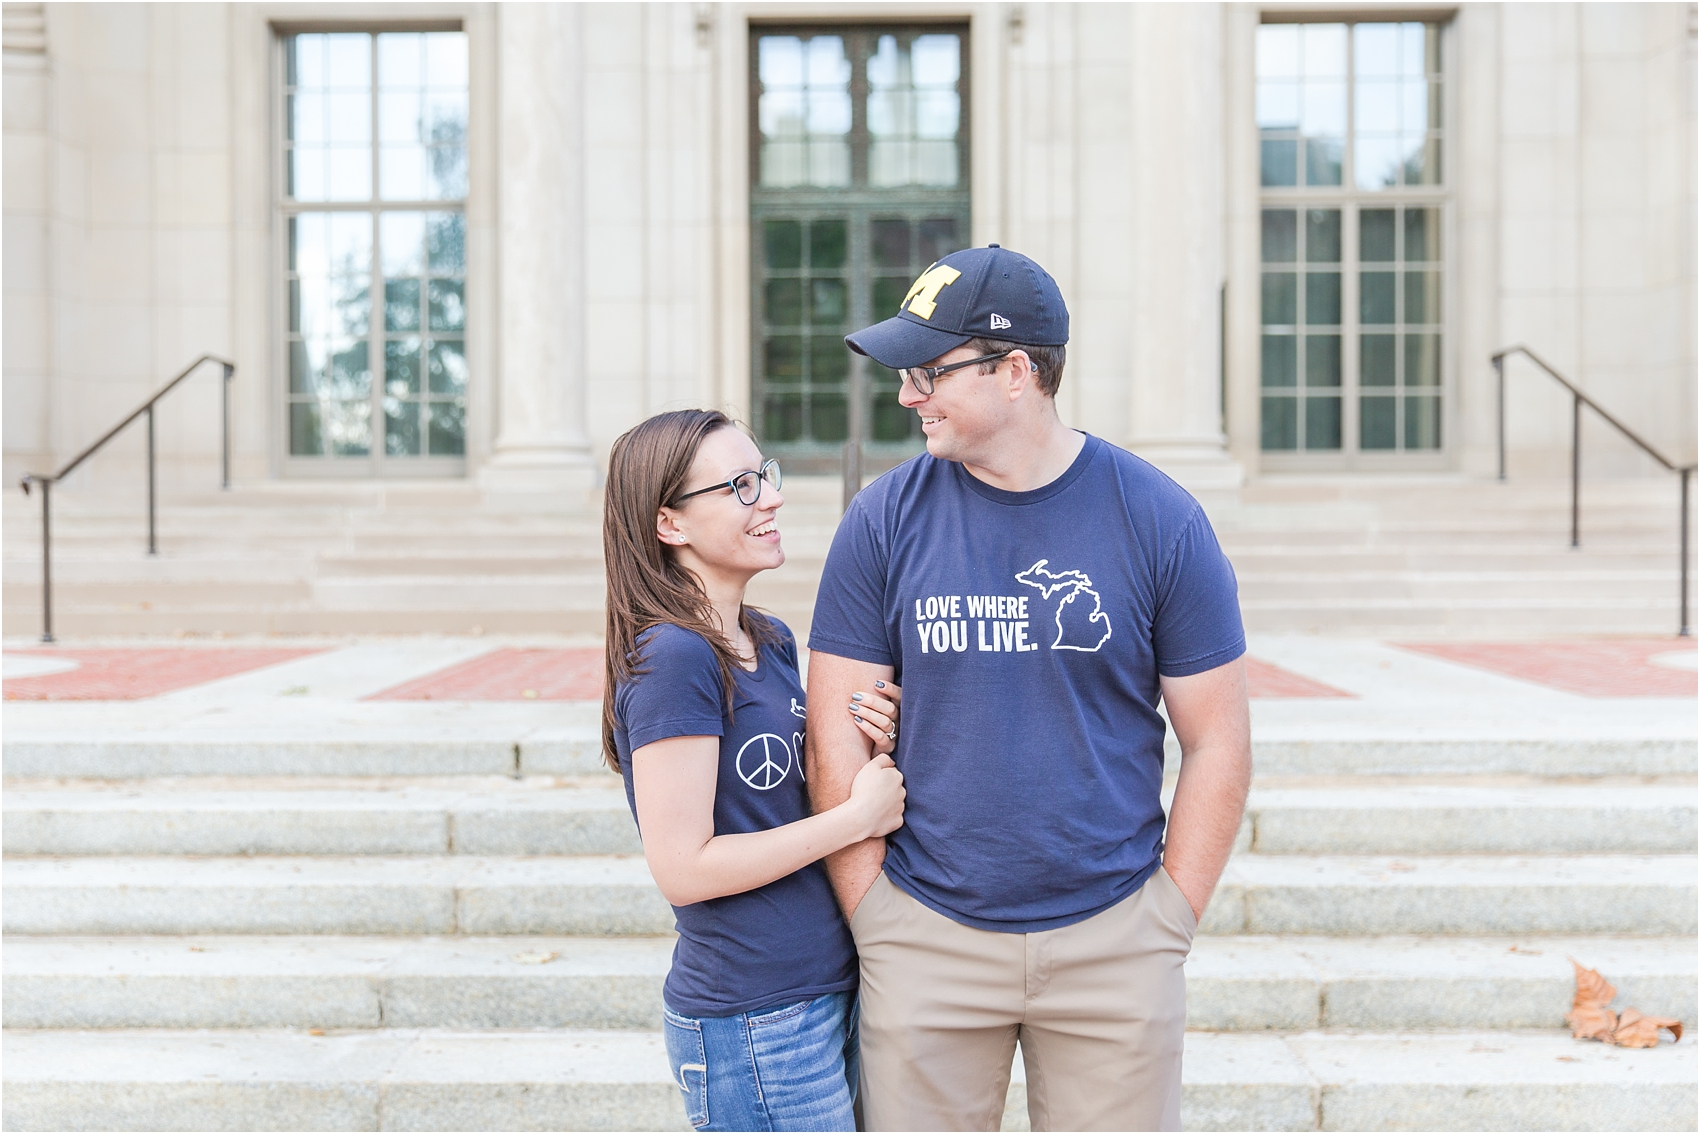 classic-fall-engagement-photos-at-the-university-of-michigan-in-ann-arbor-mi-by-courtney-carolyn-photography_0019.jpg